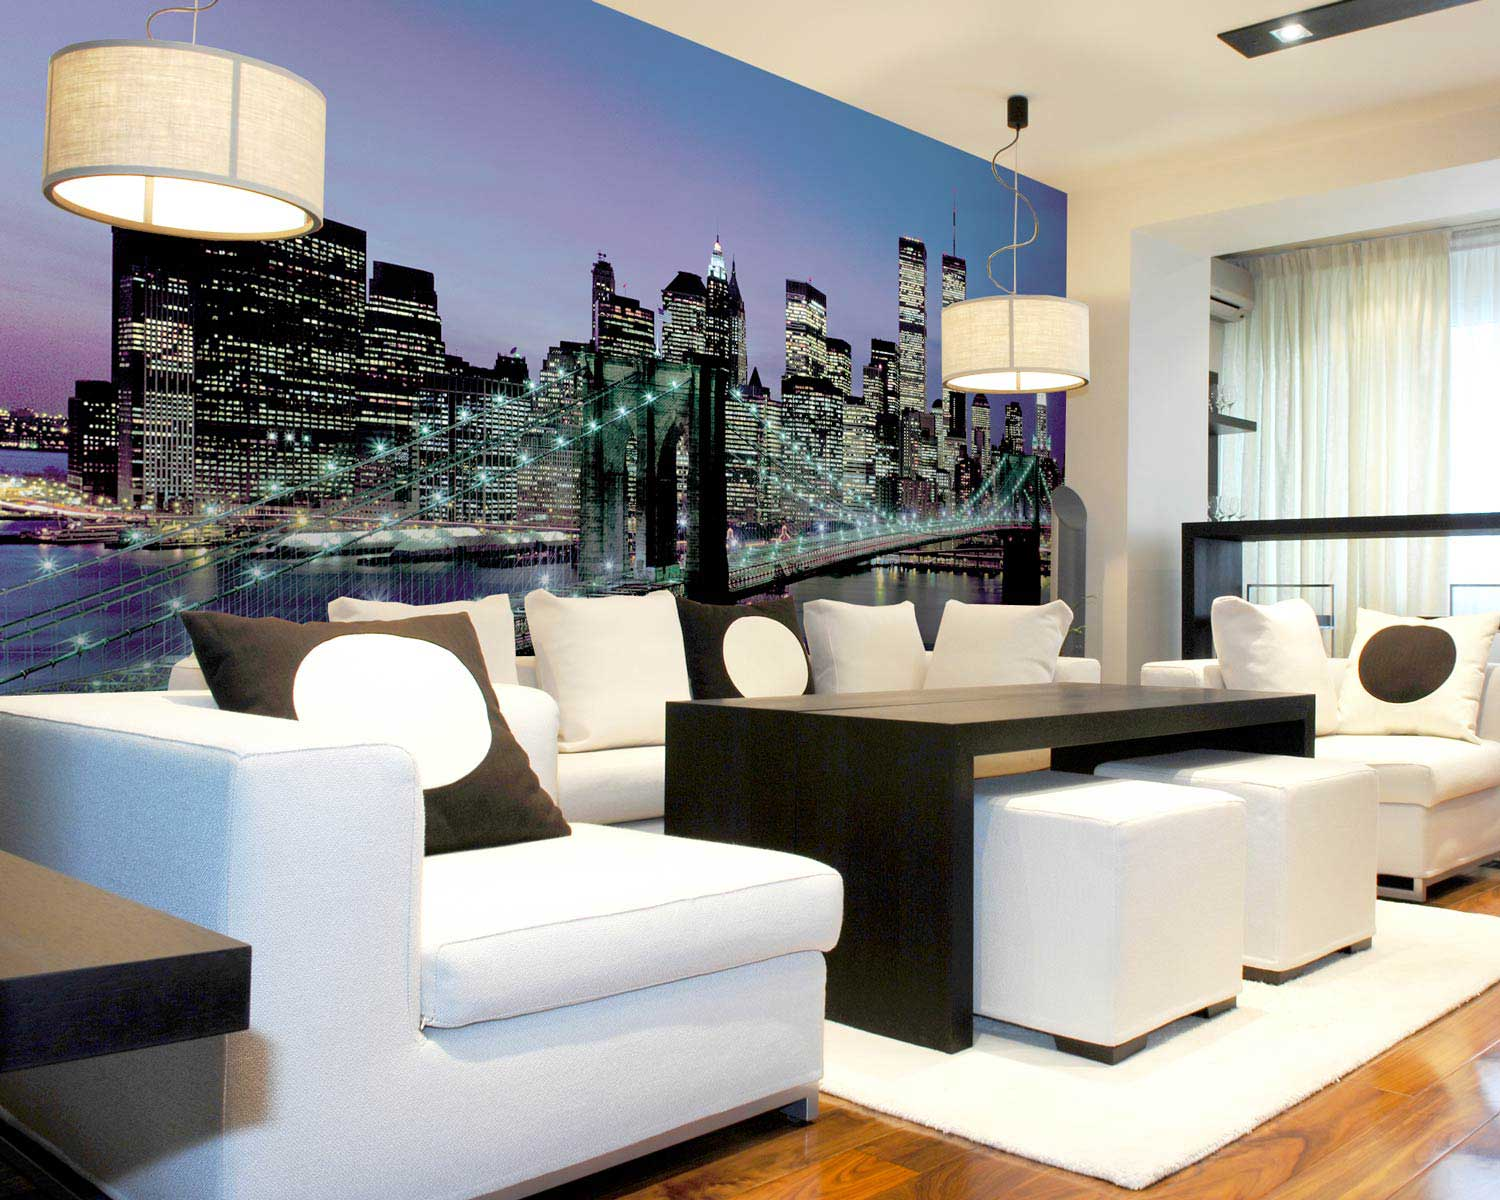 Manhatten Lights Wall Mural